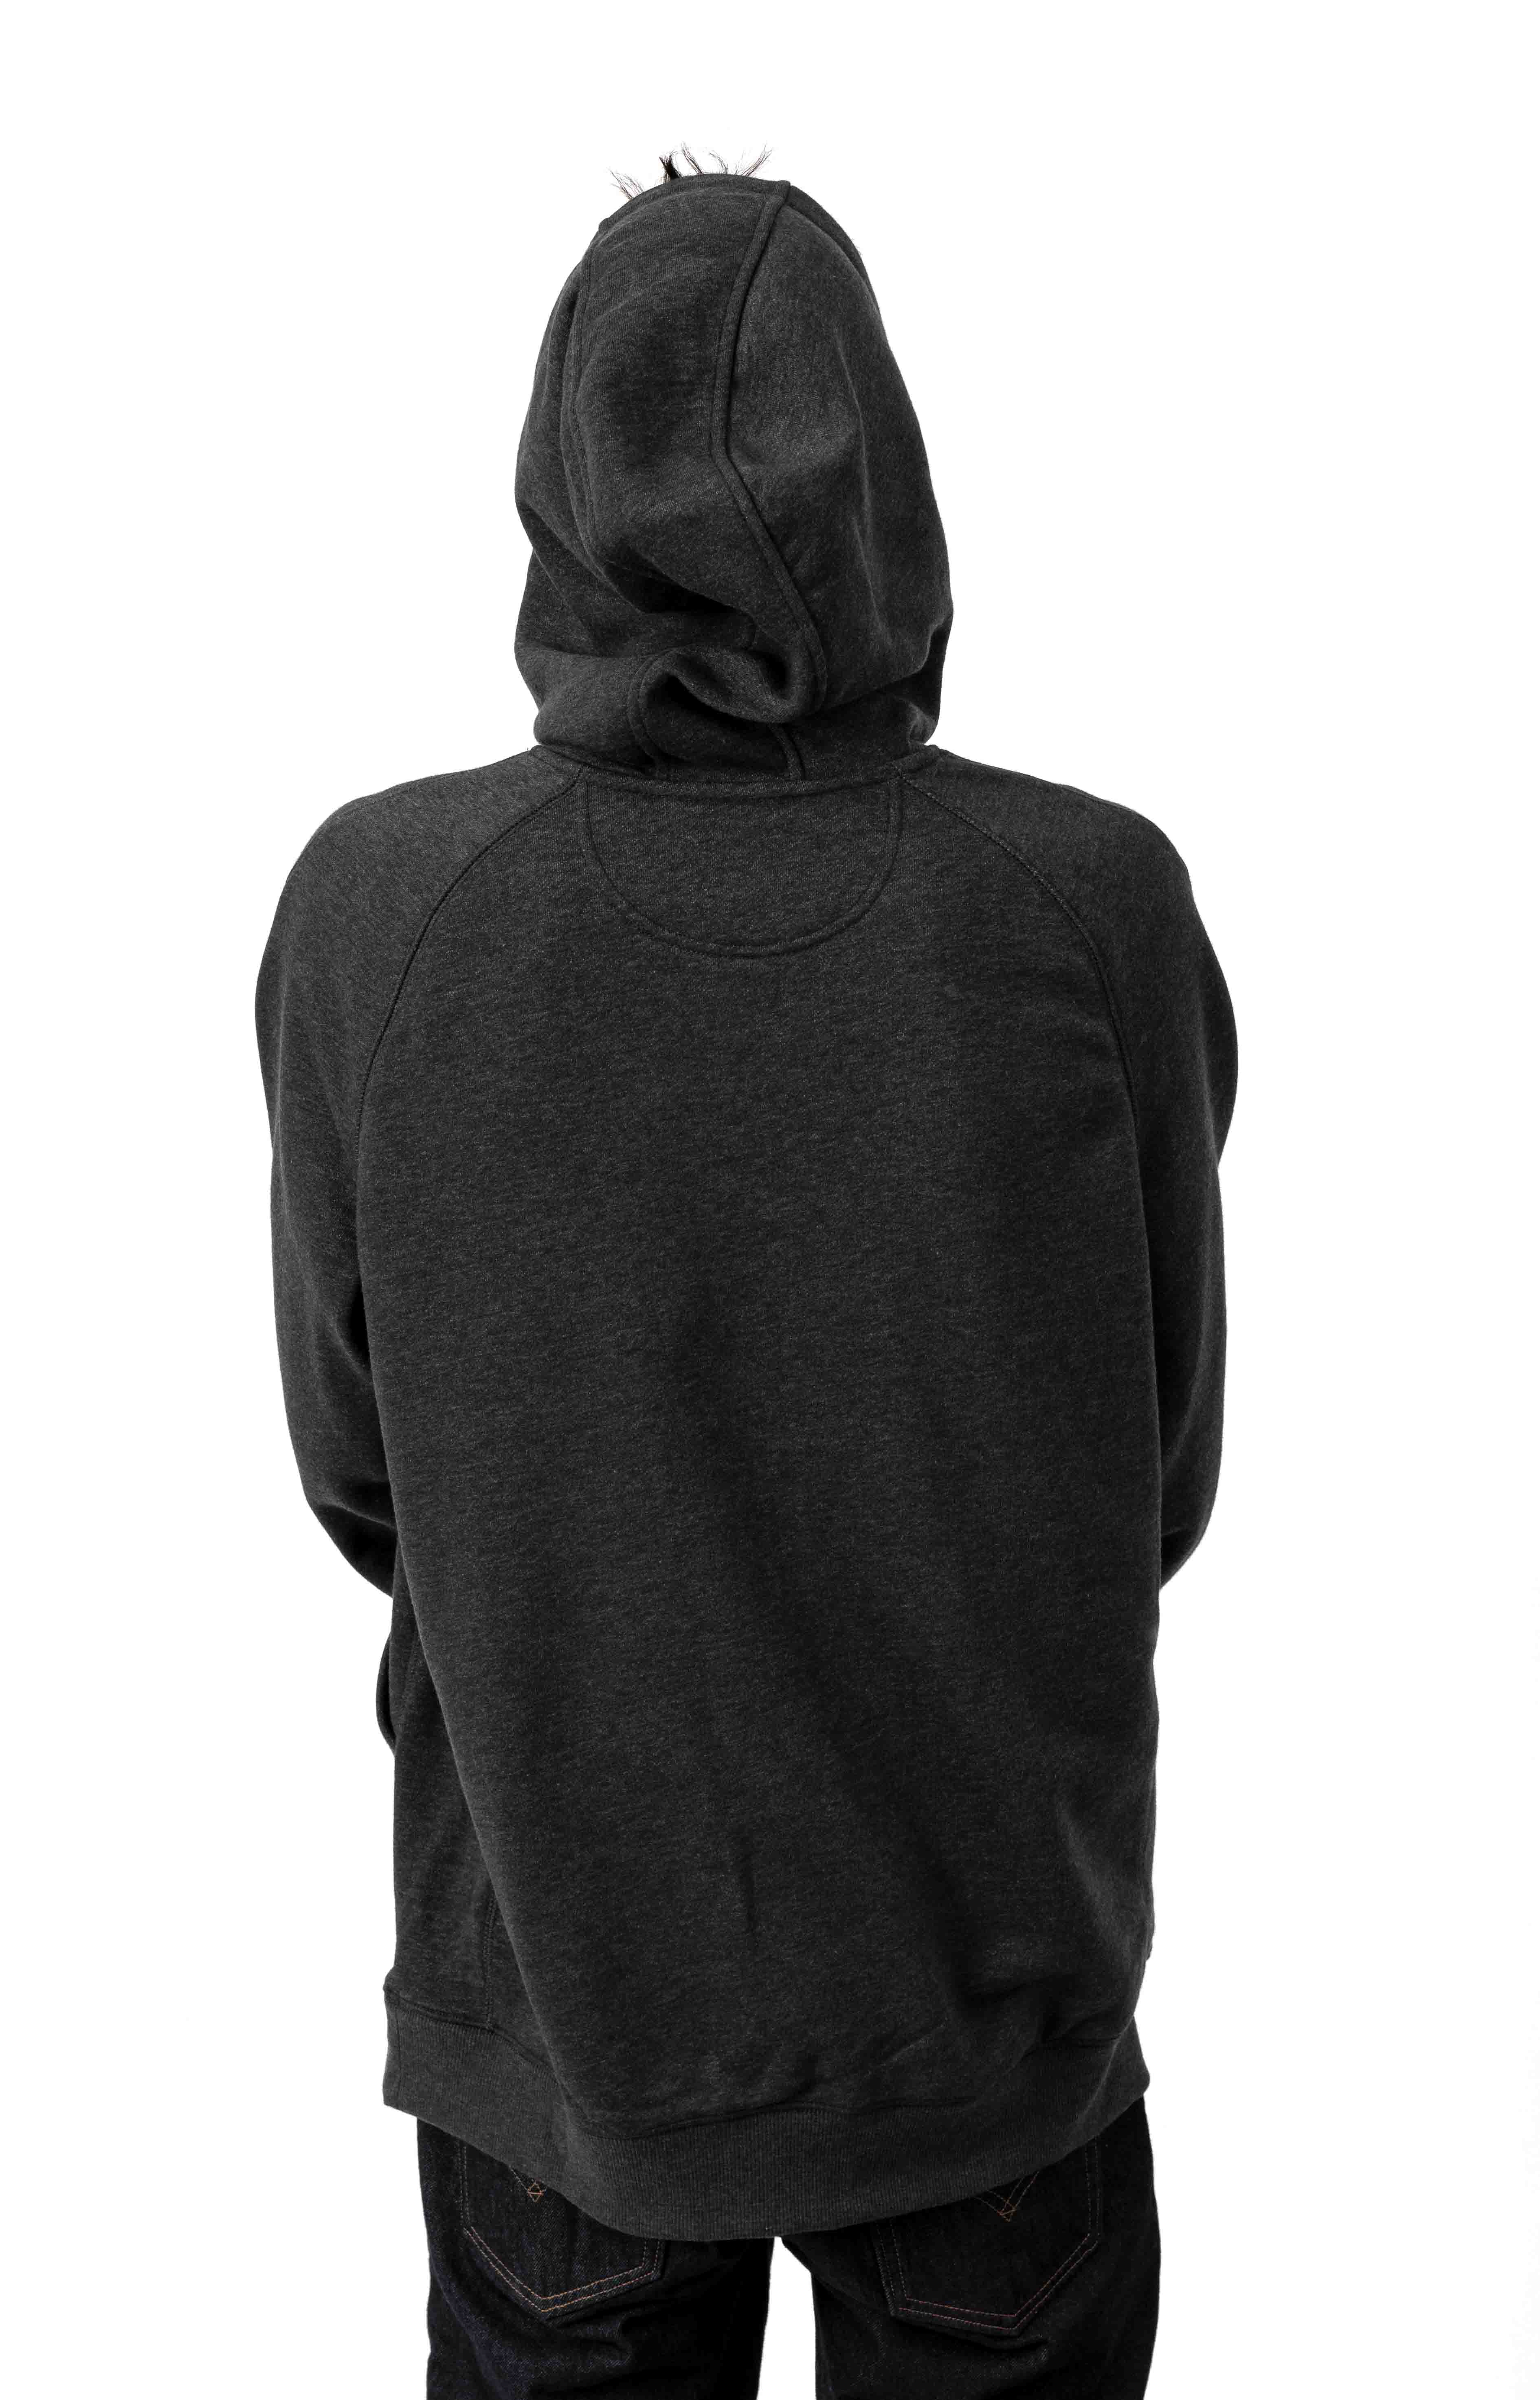 (103873) Force Delmont Signature Graphic Pullover Hoodie - Black Heather  3